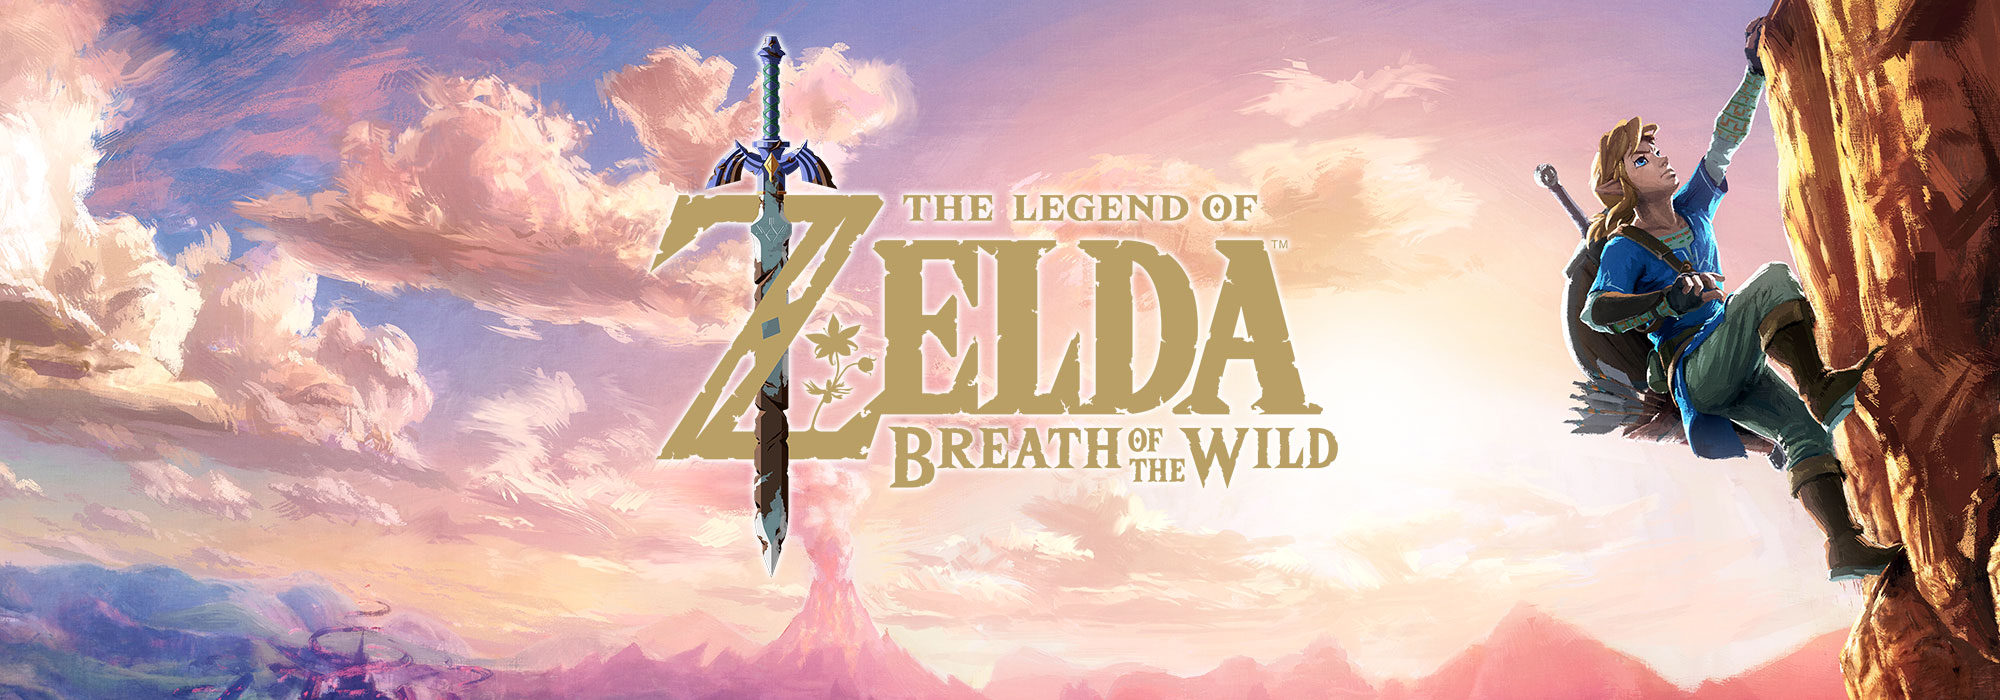 Early Impression: The Legend of Zelda: Breath of the Wild